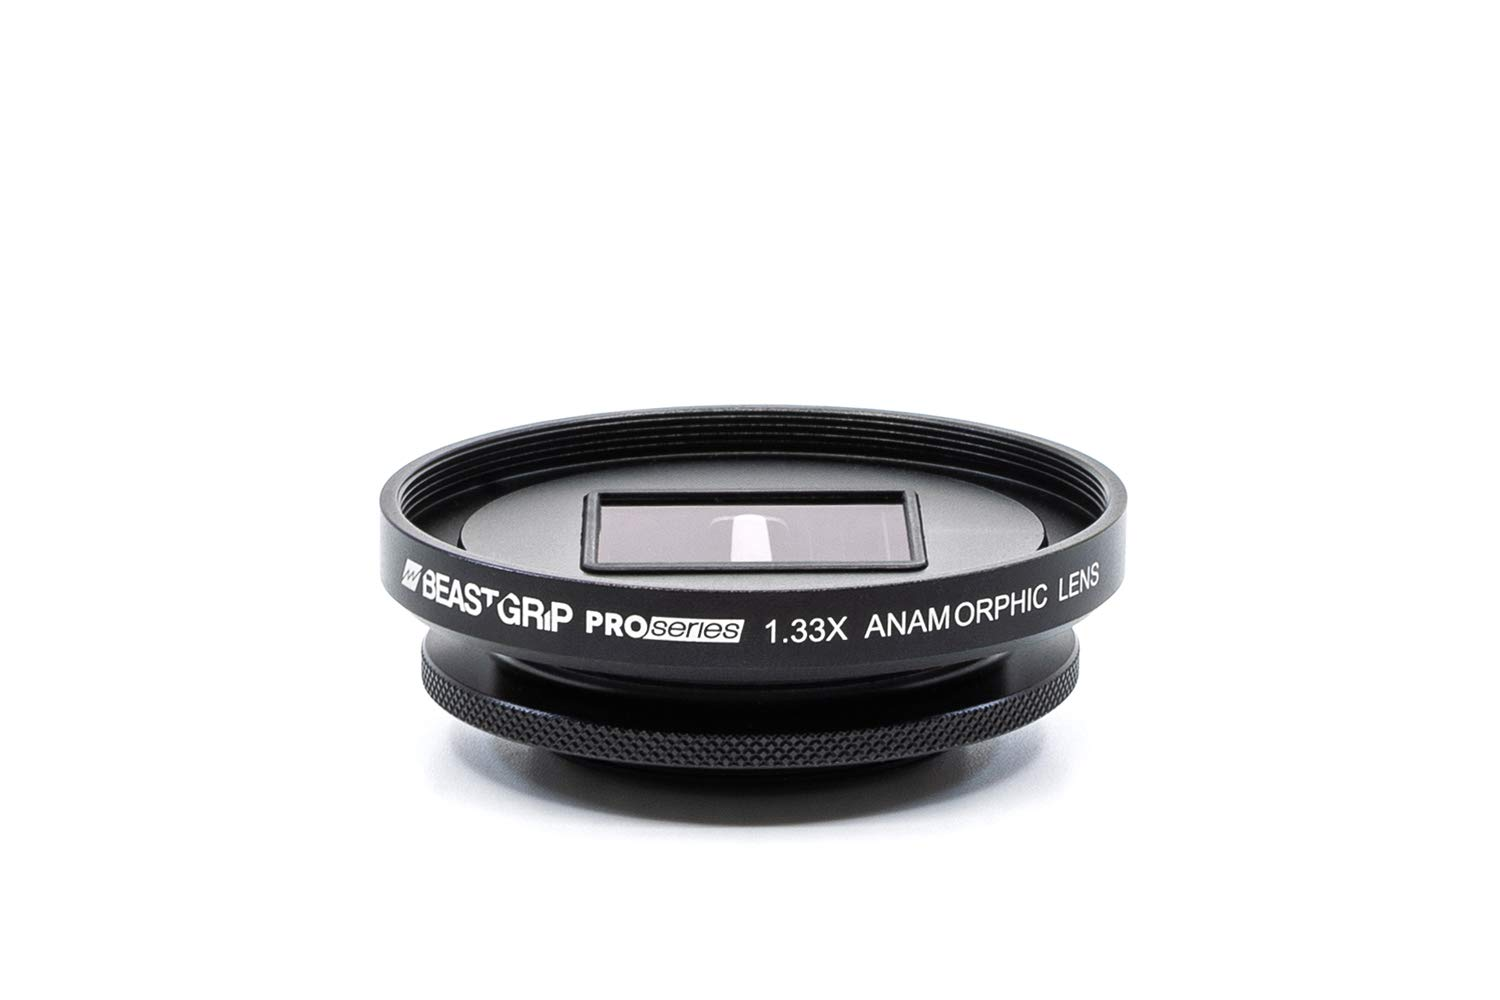 Pro Series - 1.33X Anamorphic Lens by Beastgrip for iPhone, Pixel, Samsung Galaxy, OnePlus and Other Camera Phones by Beastgrip